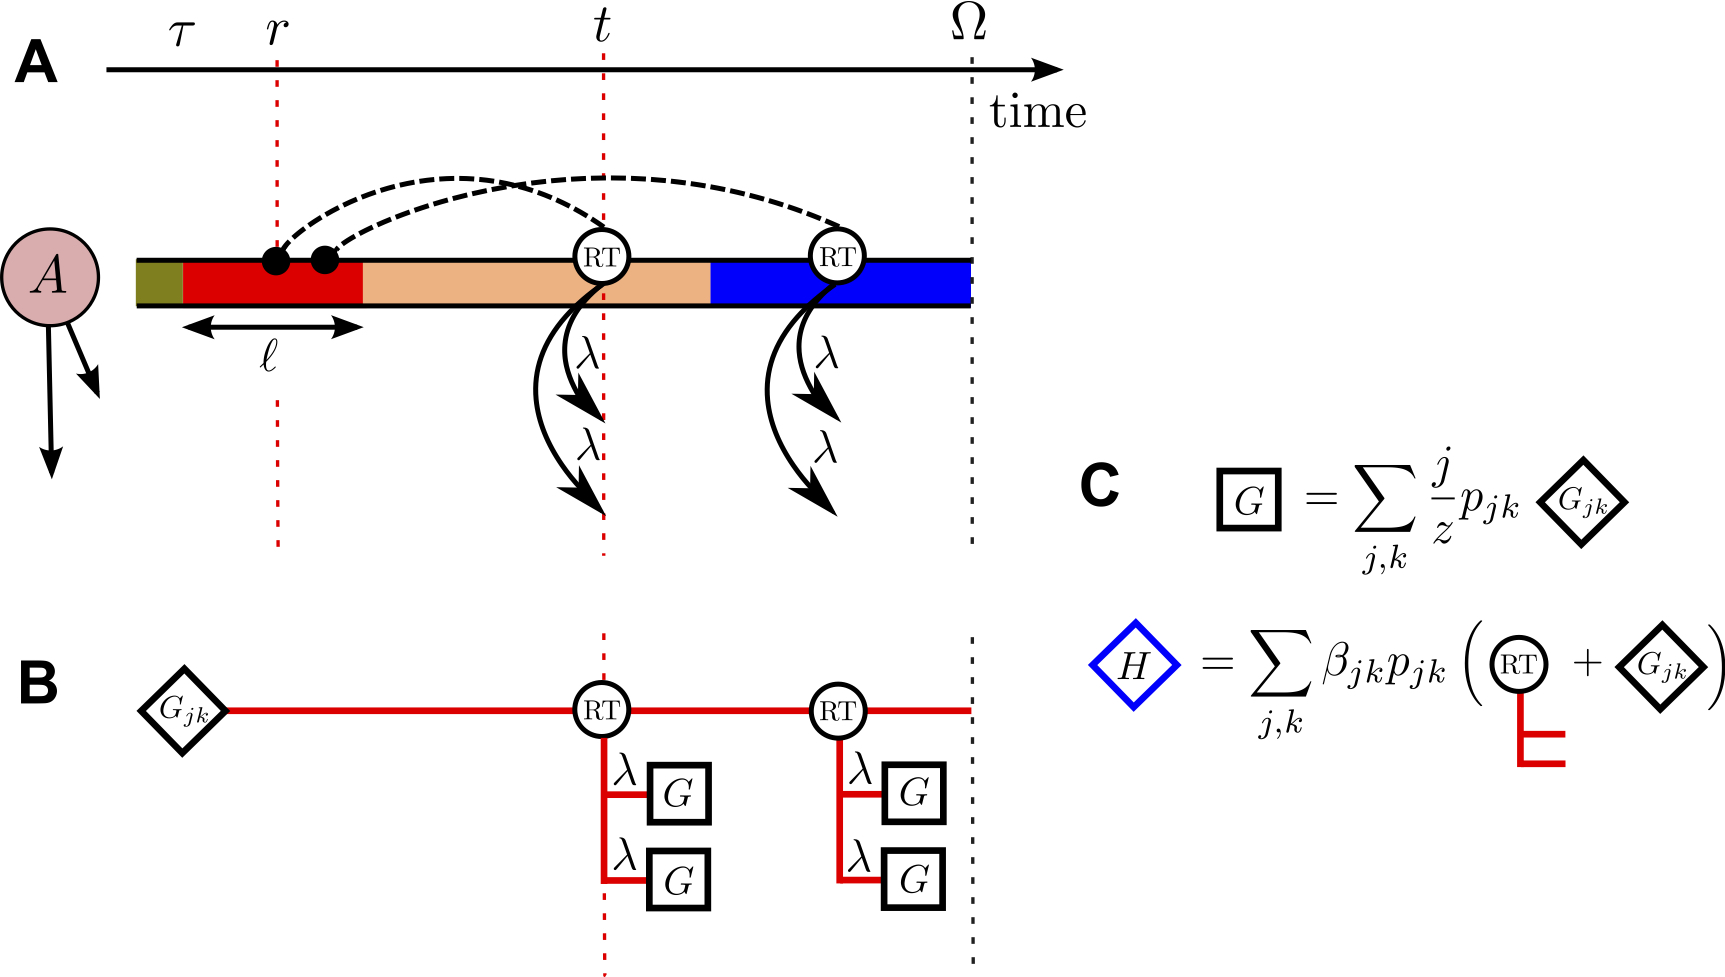 Modeling the effects of network structure, competition and memory time on social spreading phenomena